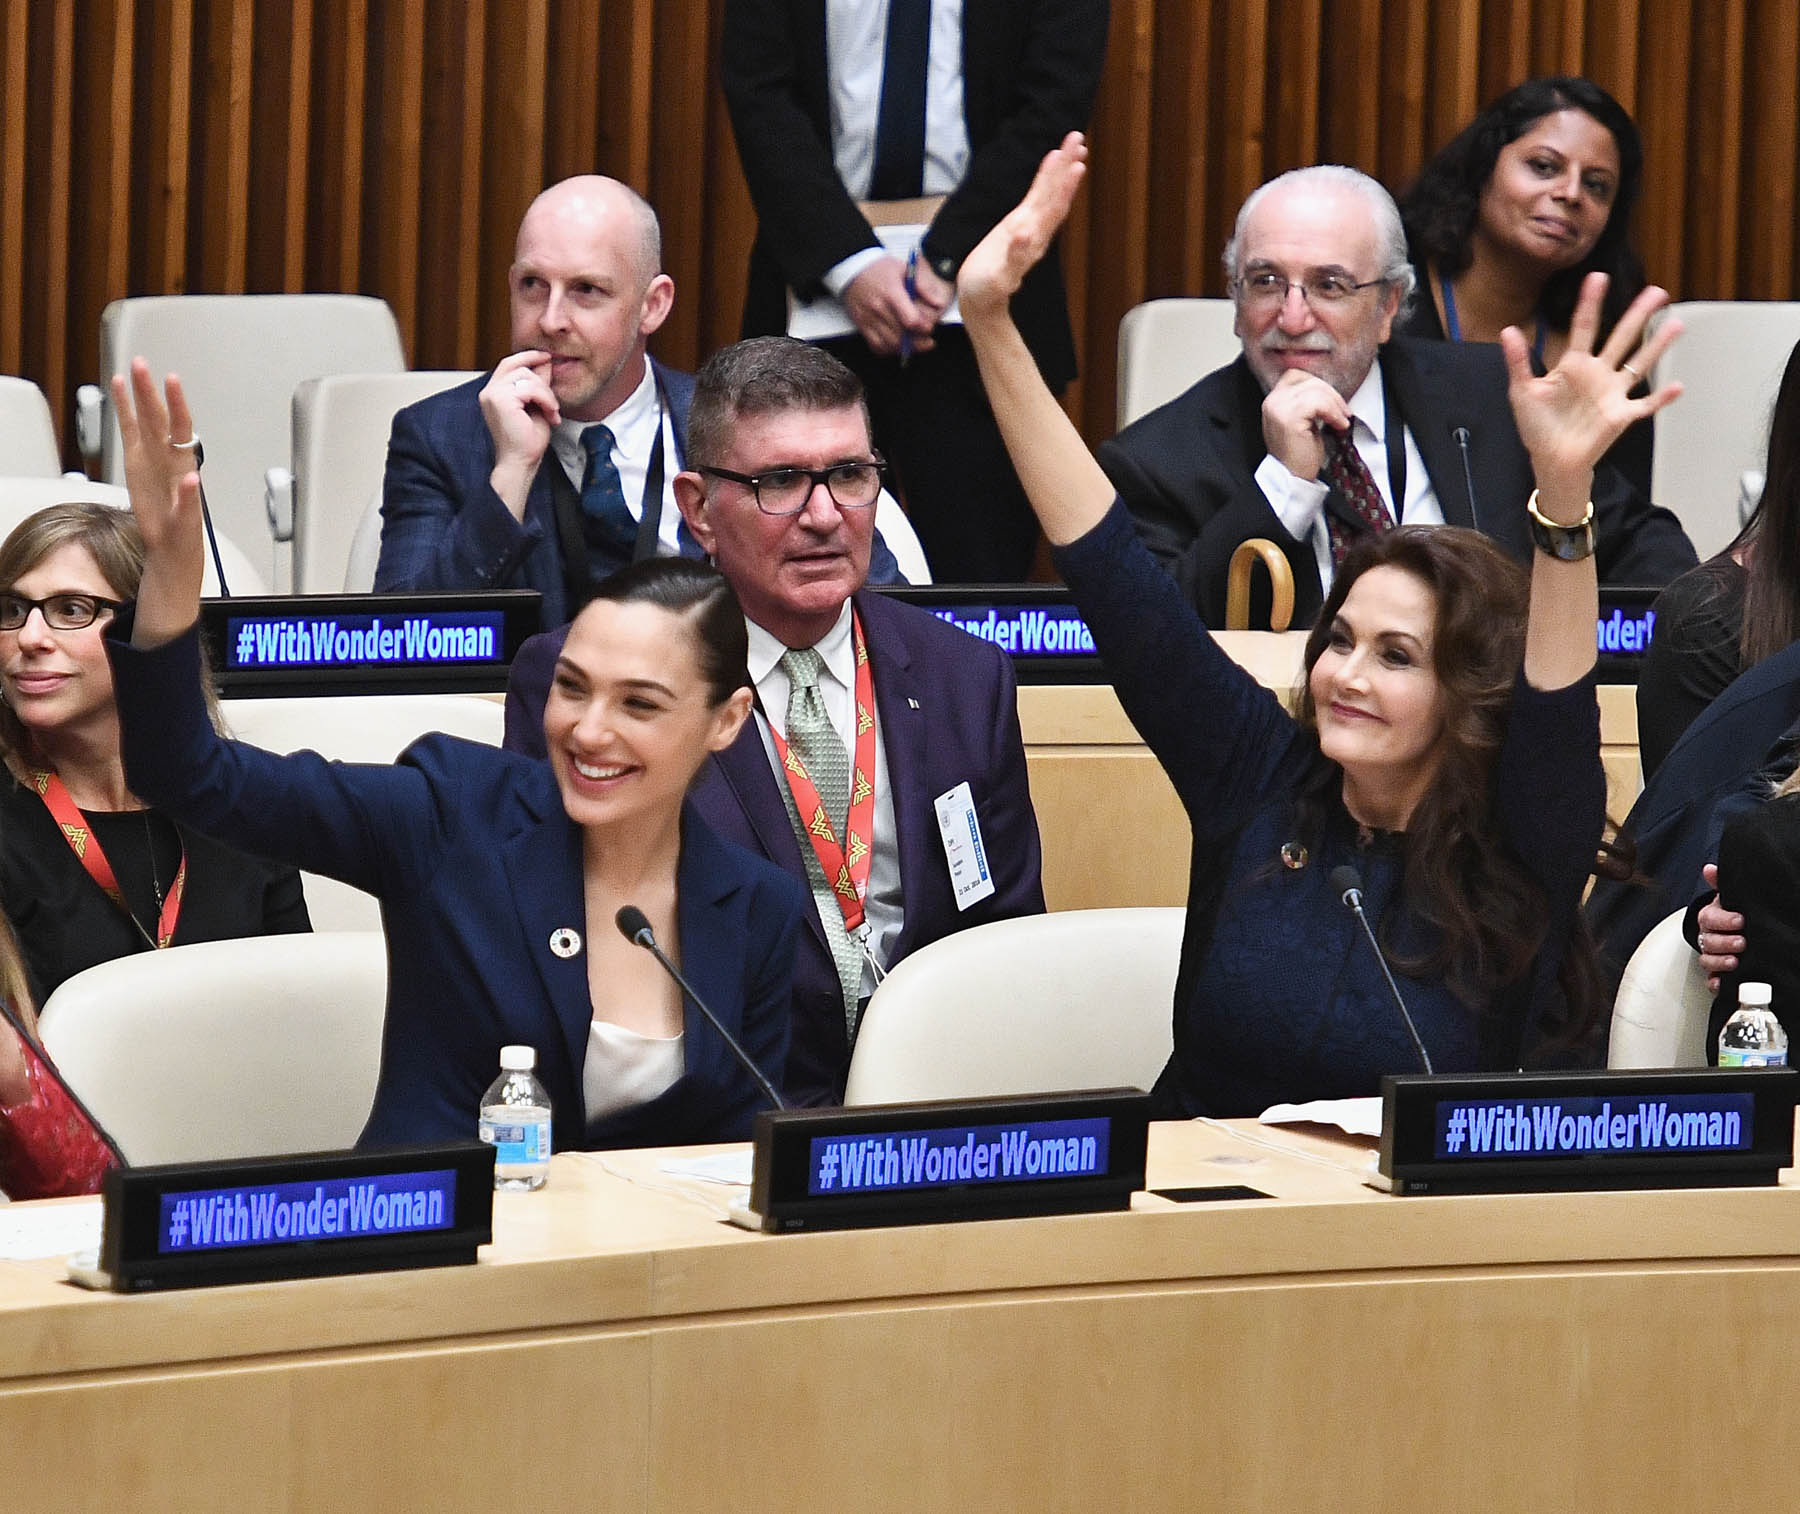 Actresses Gal Gadot and Lynda Carter smiling and waving at ceremony at U.N. (© Getty Images/Dimitrios Kambouris)